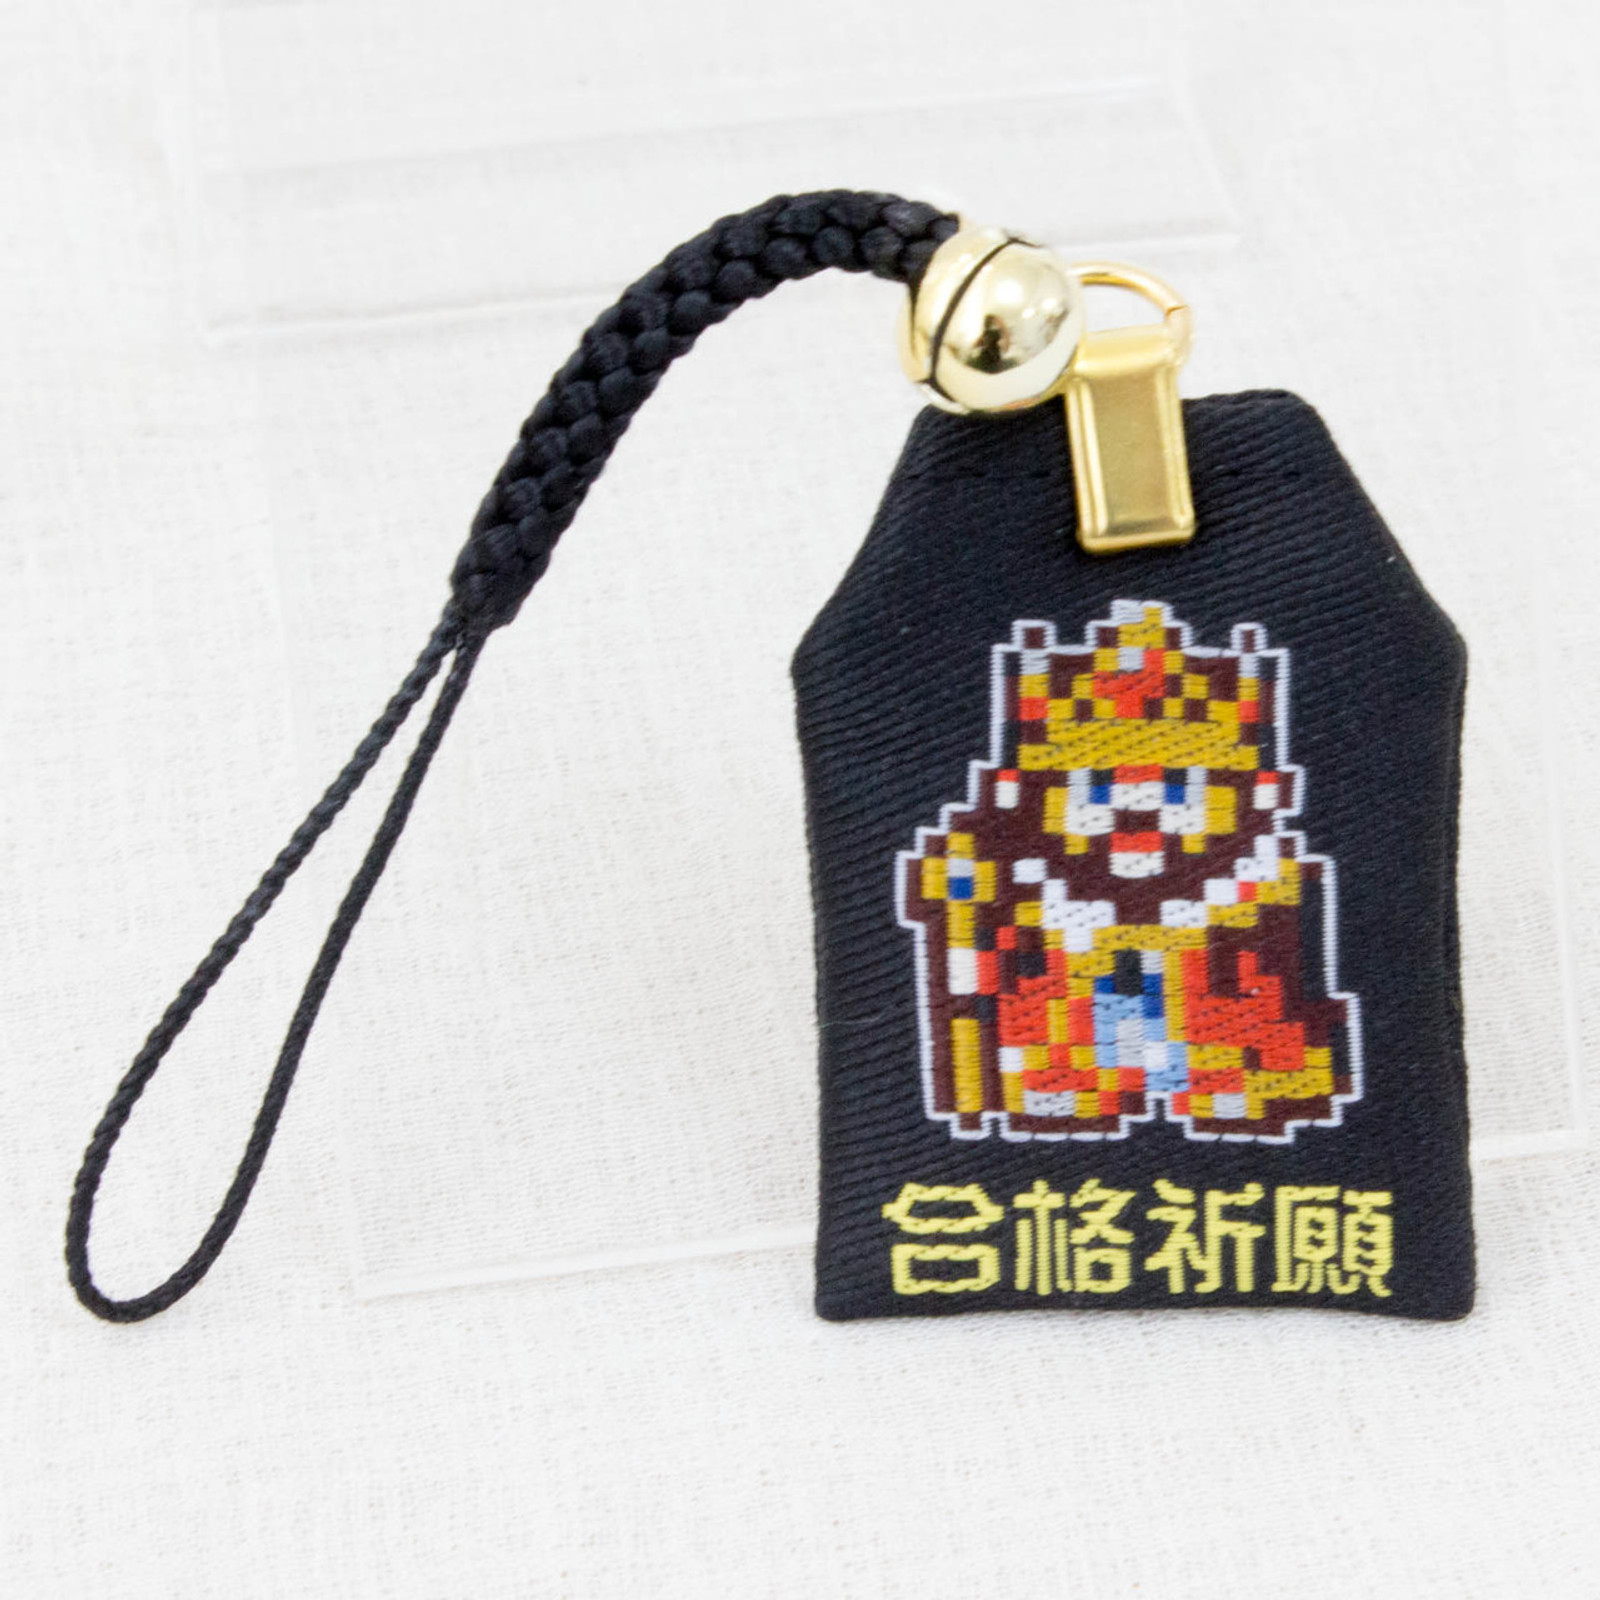 Game Center CX KING Omamori Amulet Strap JAPAN